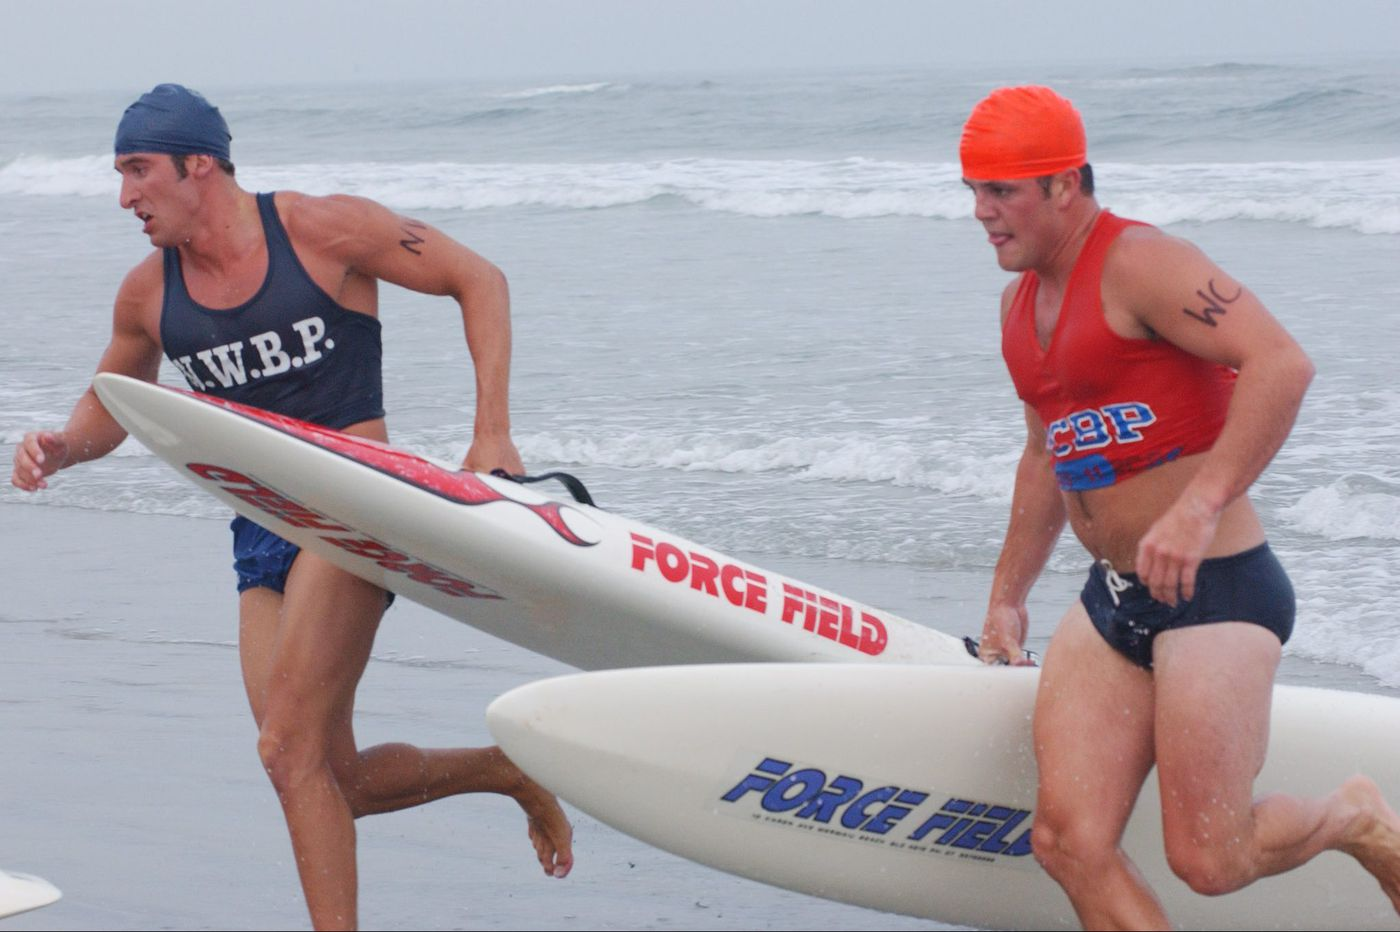 Lifeguard Championships, Barry Manilow and other things to do down the Shore